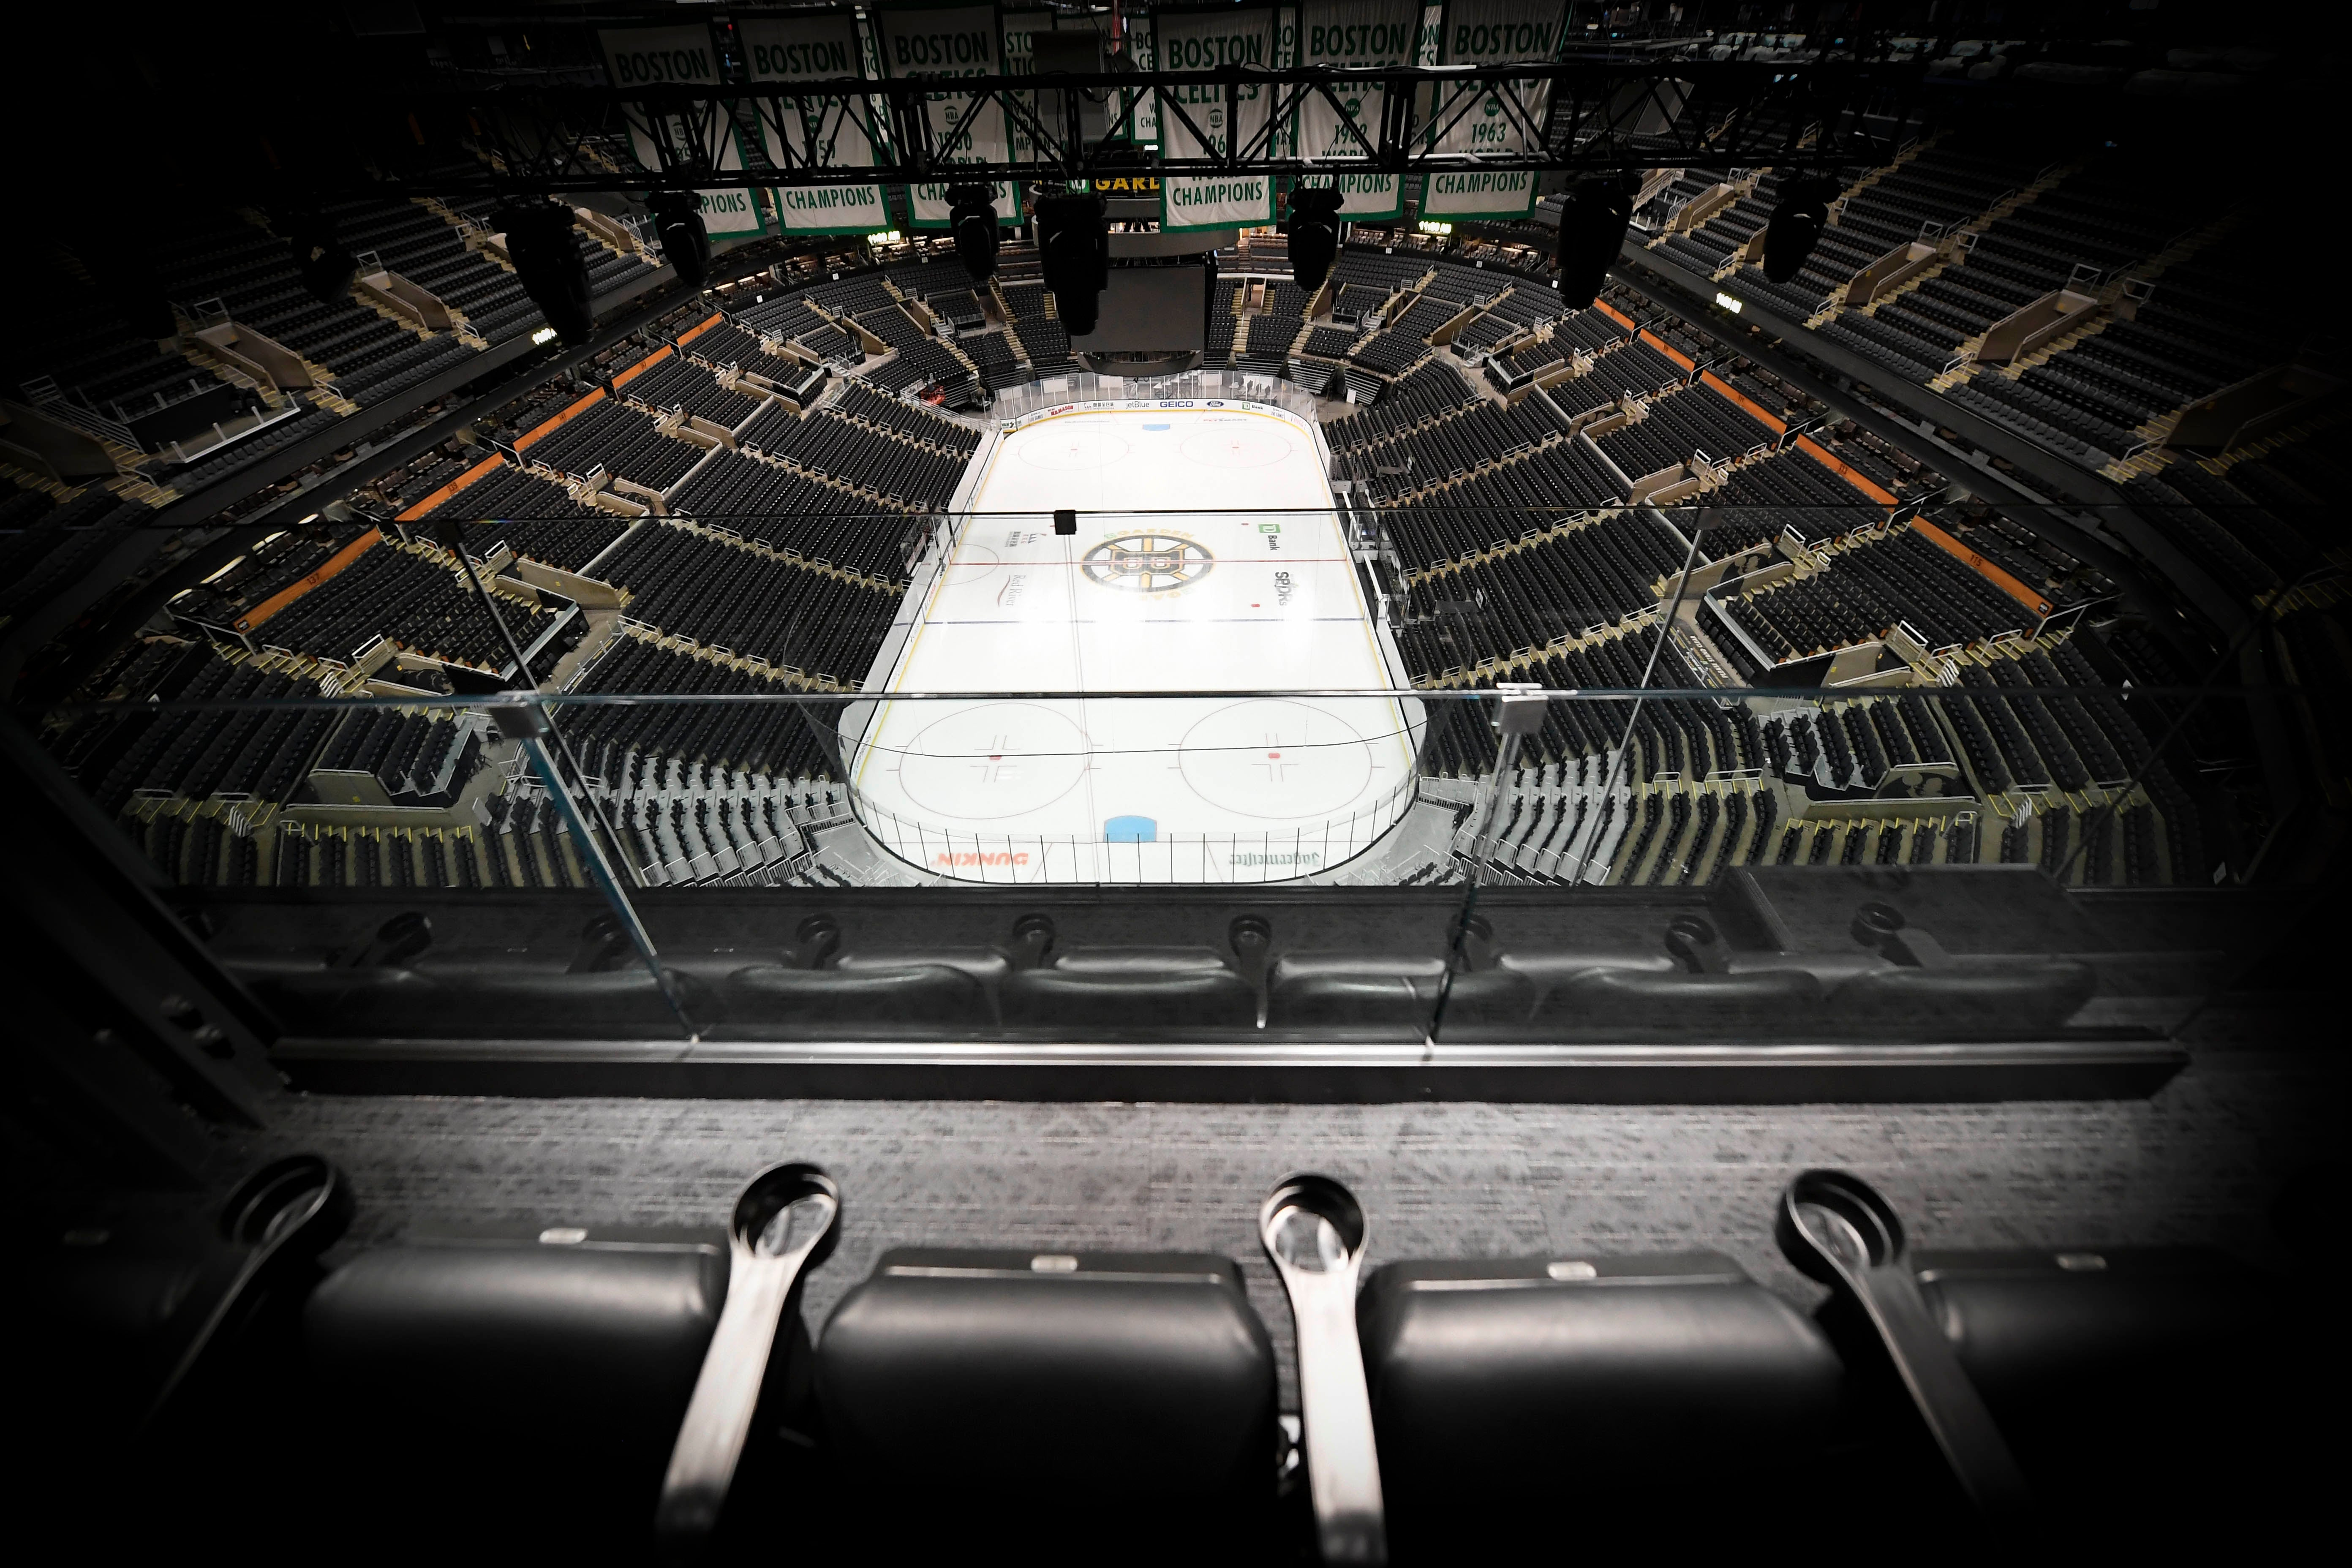 Image of arena from Rafters